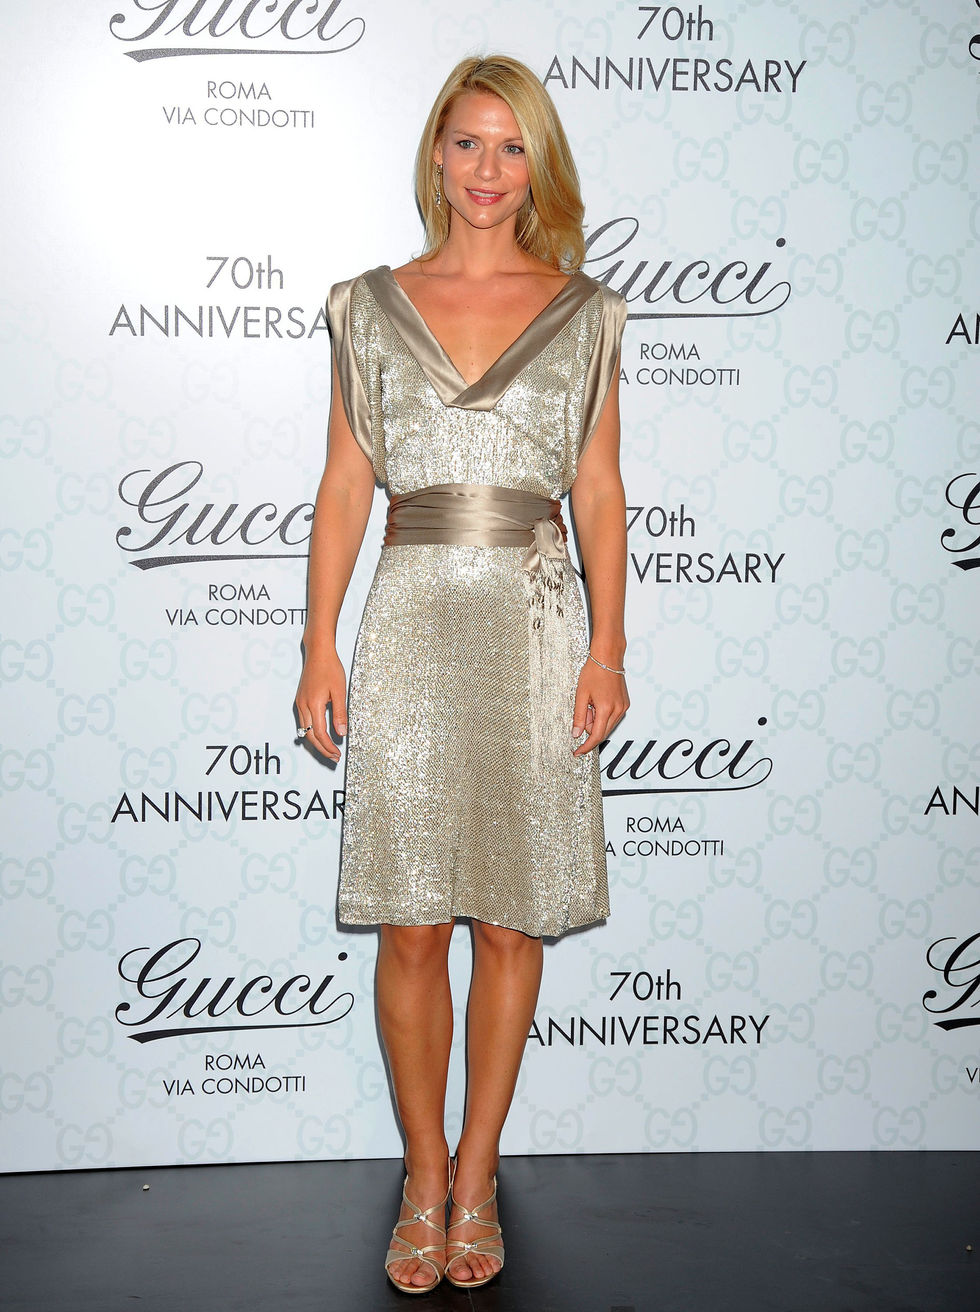 claire-danes-at-gucci-fashion-show-and-party-in-rome-01